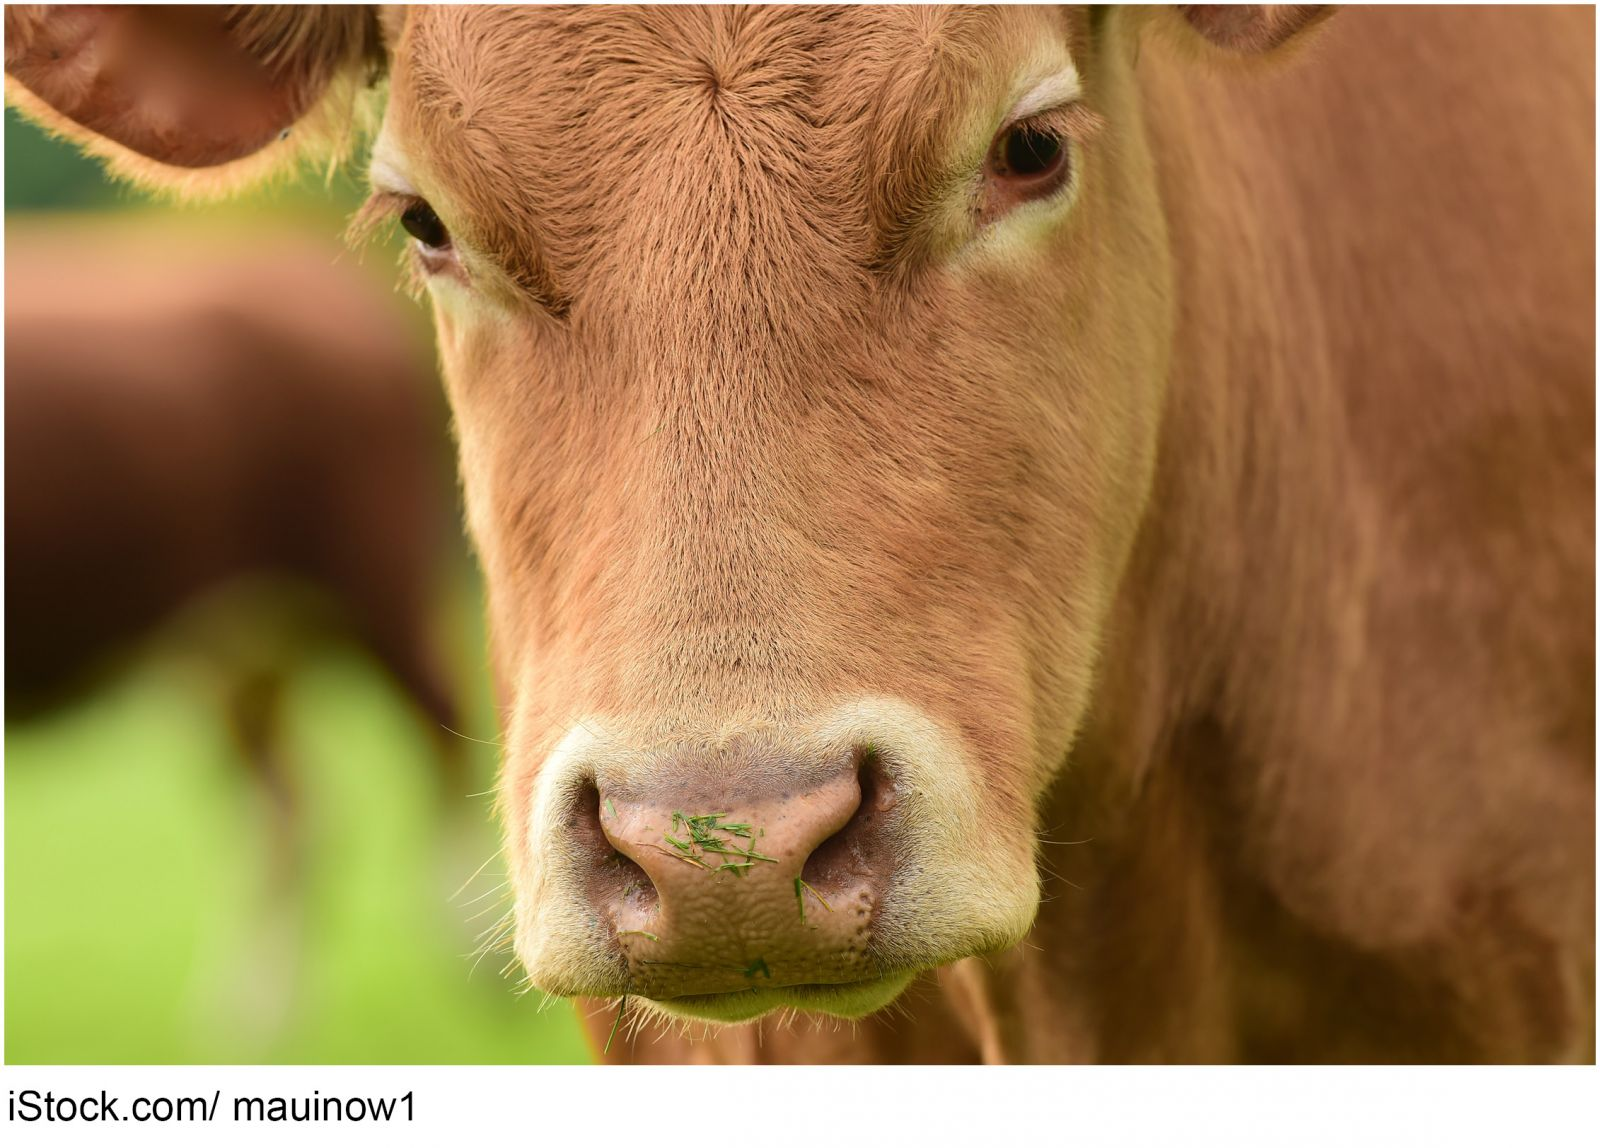 Photo of beef cow - iStock.com/ mauinow1